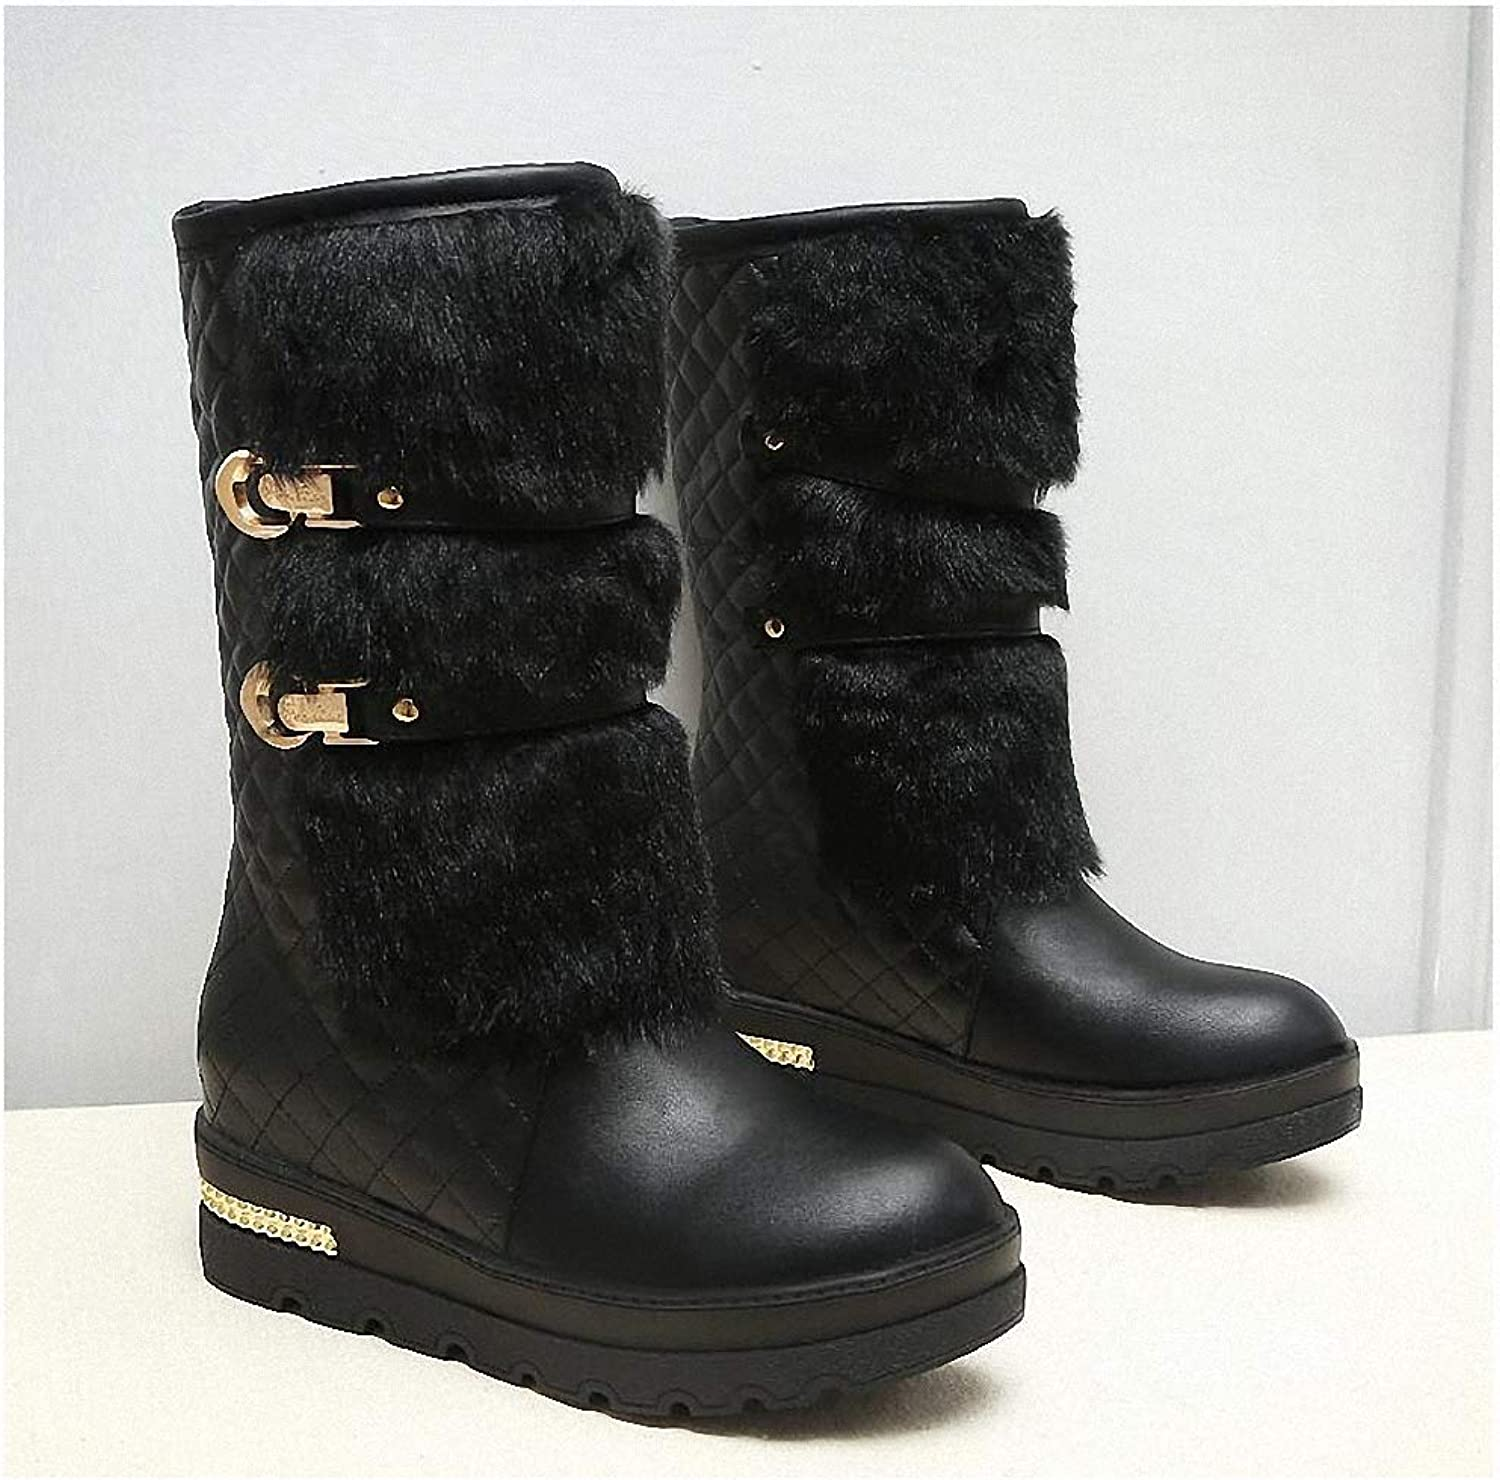 Womens Backpacking Boots Large Size 34-43 Women Winter Boots Fashion Hidden Wedges Warm Fur shoes Woman Platform Med-Calf Snow Boots N164